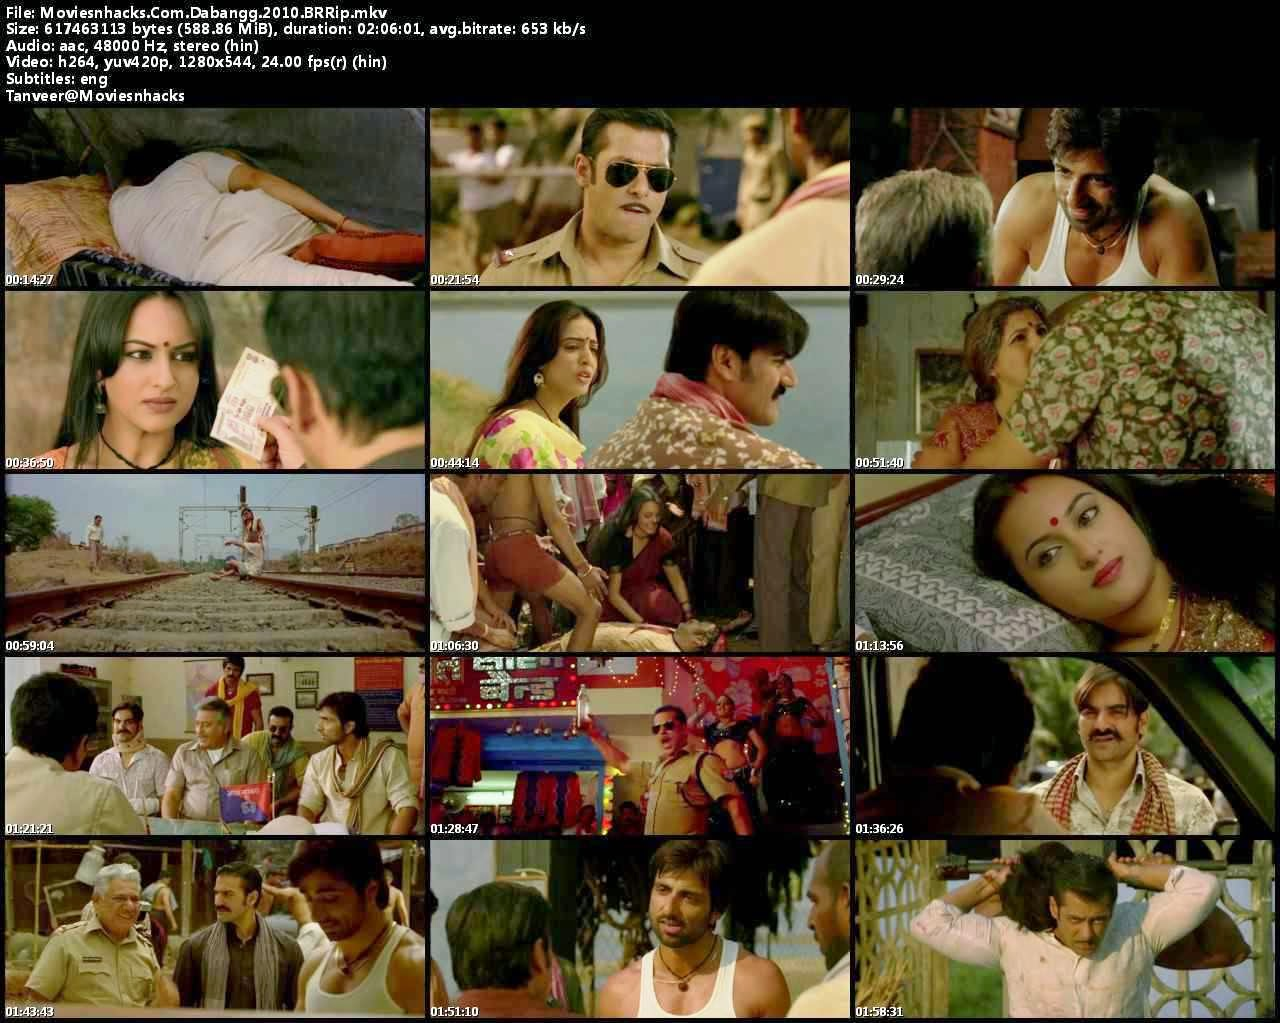 Dabangg (2010) 720p Bluray